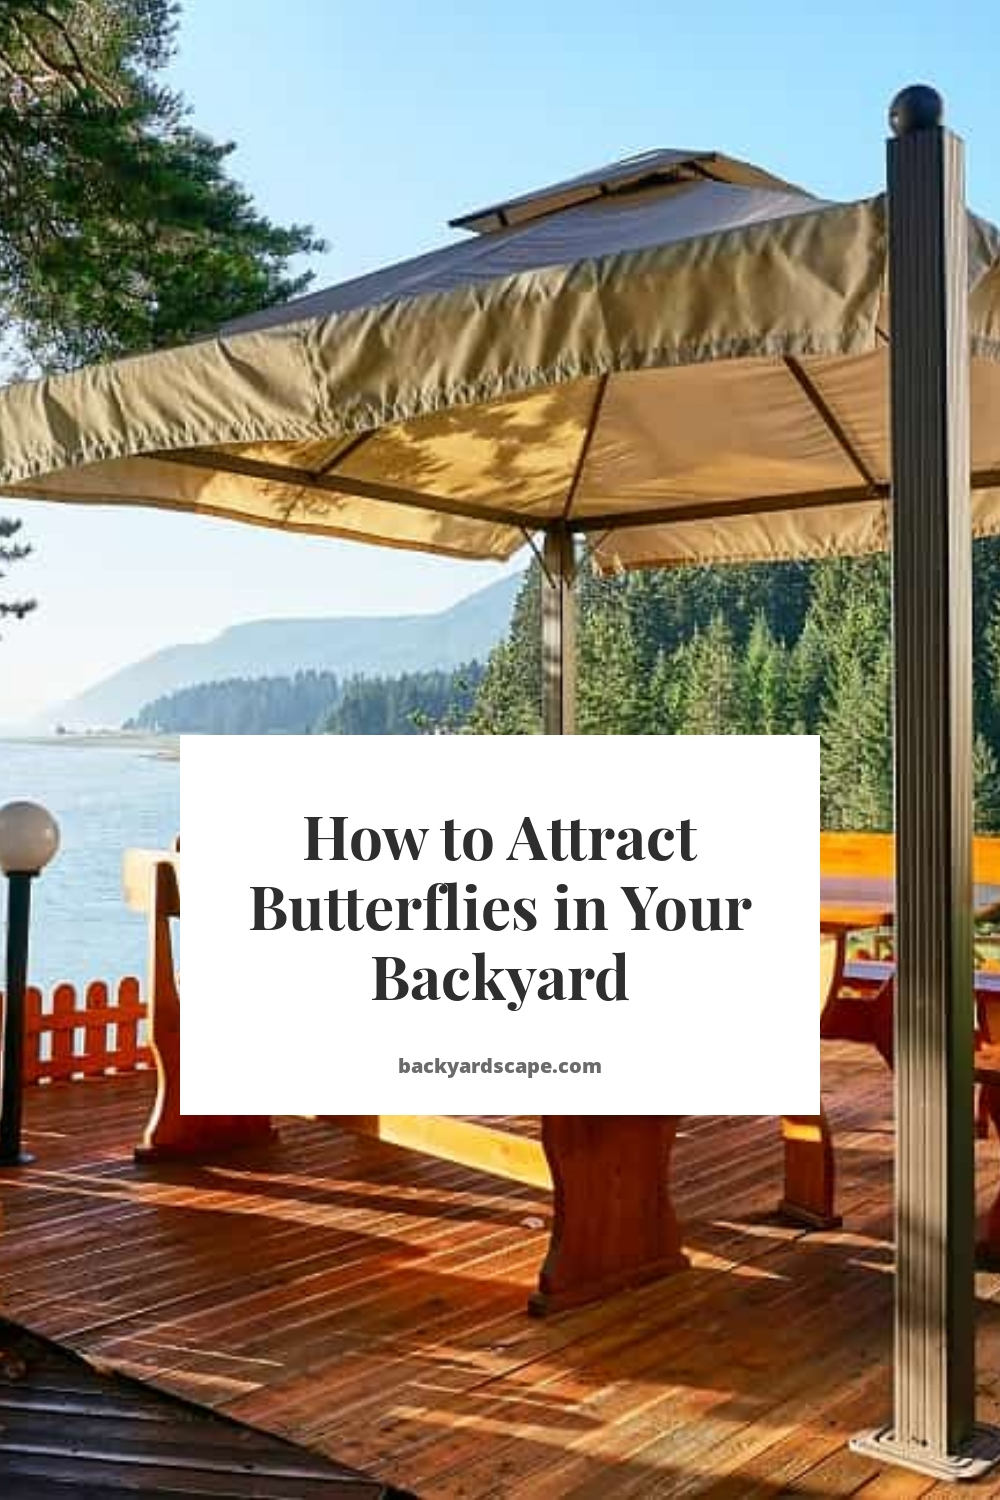 How to Attract Butterflies in Your Backyard